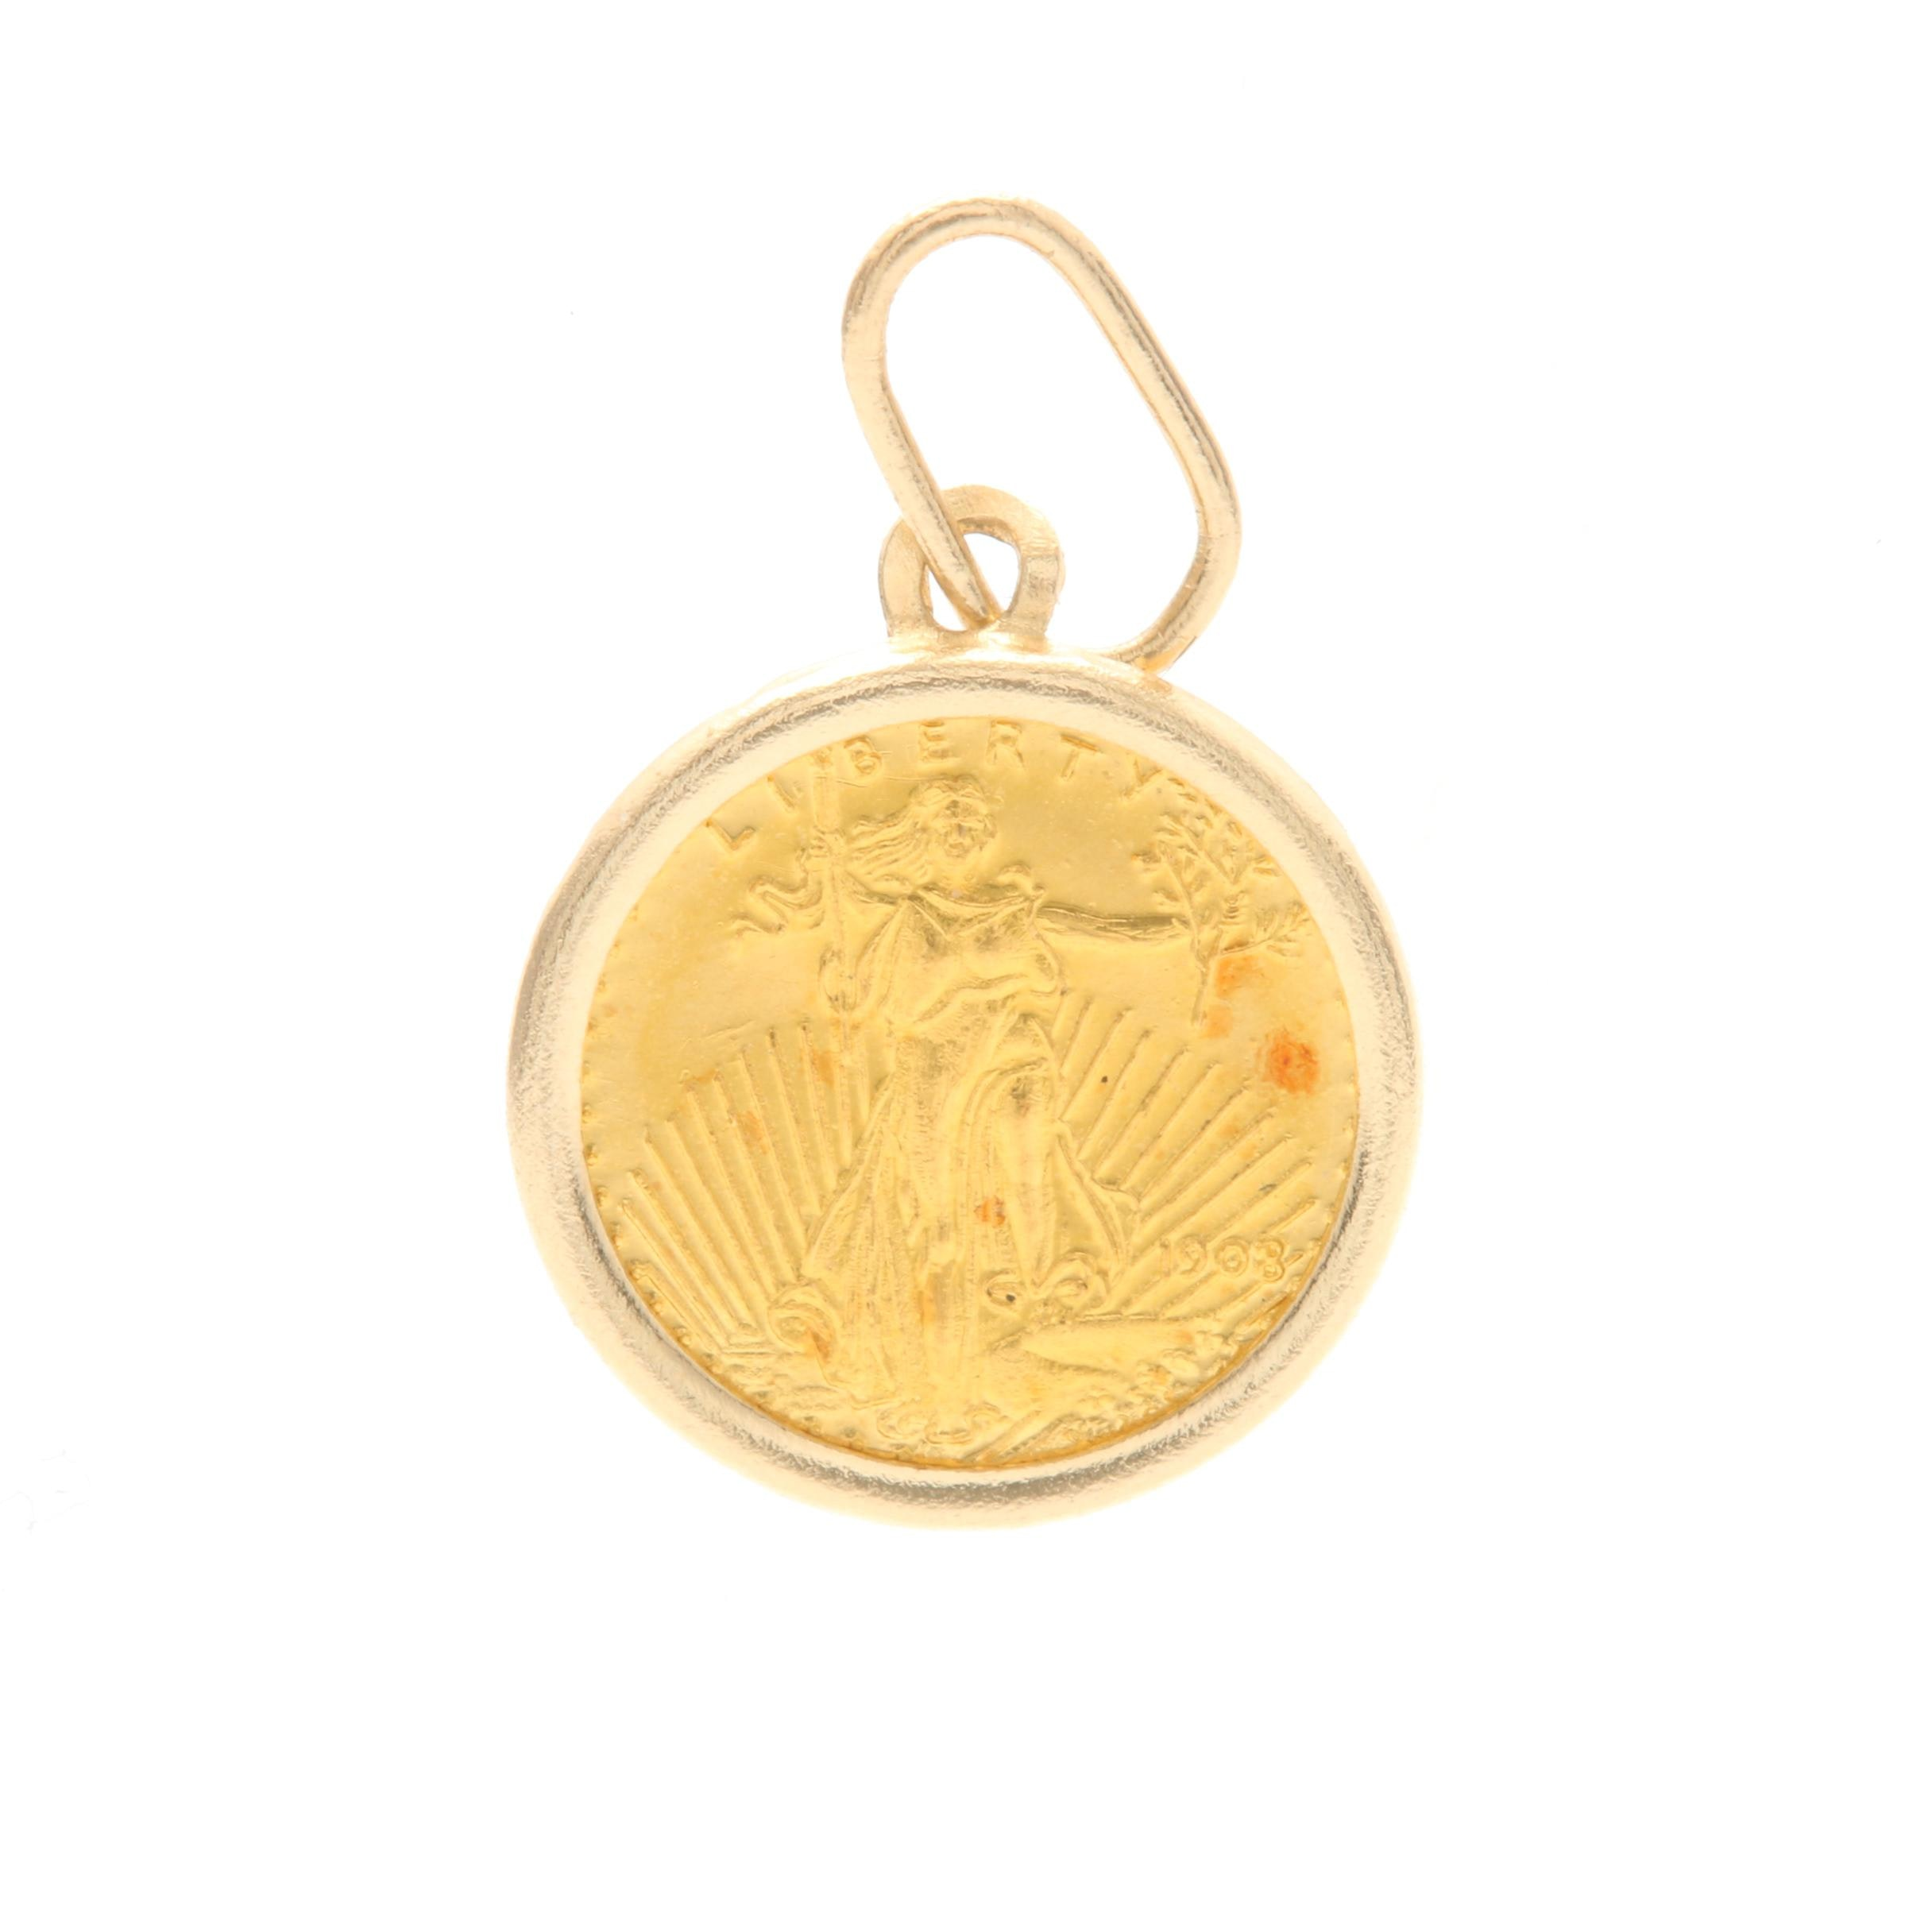 14K Yellow Gold Coin Pendant with 22K Gold Miniature Coin Replica